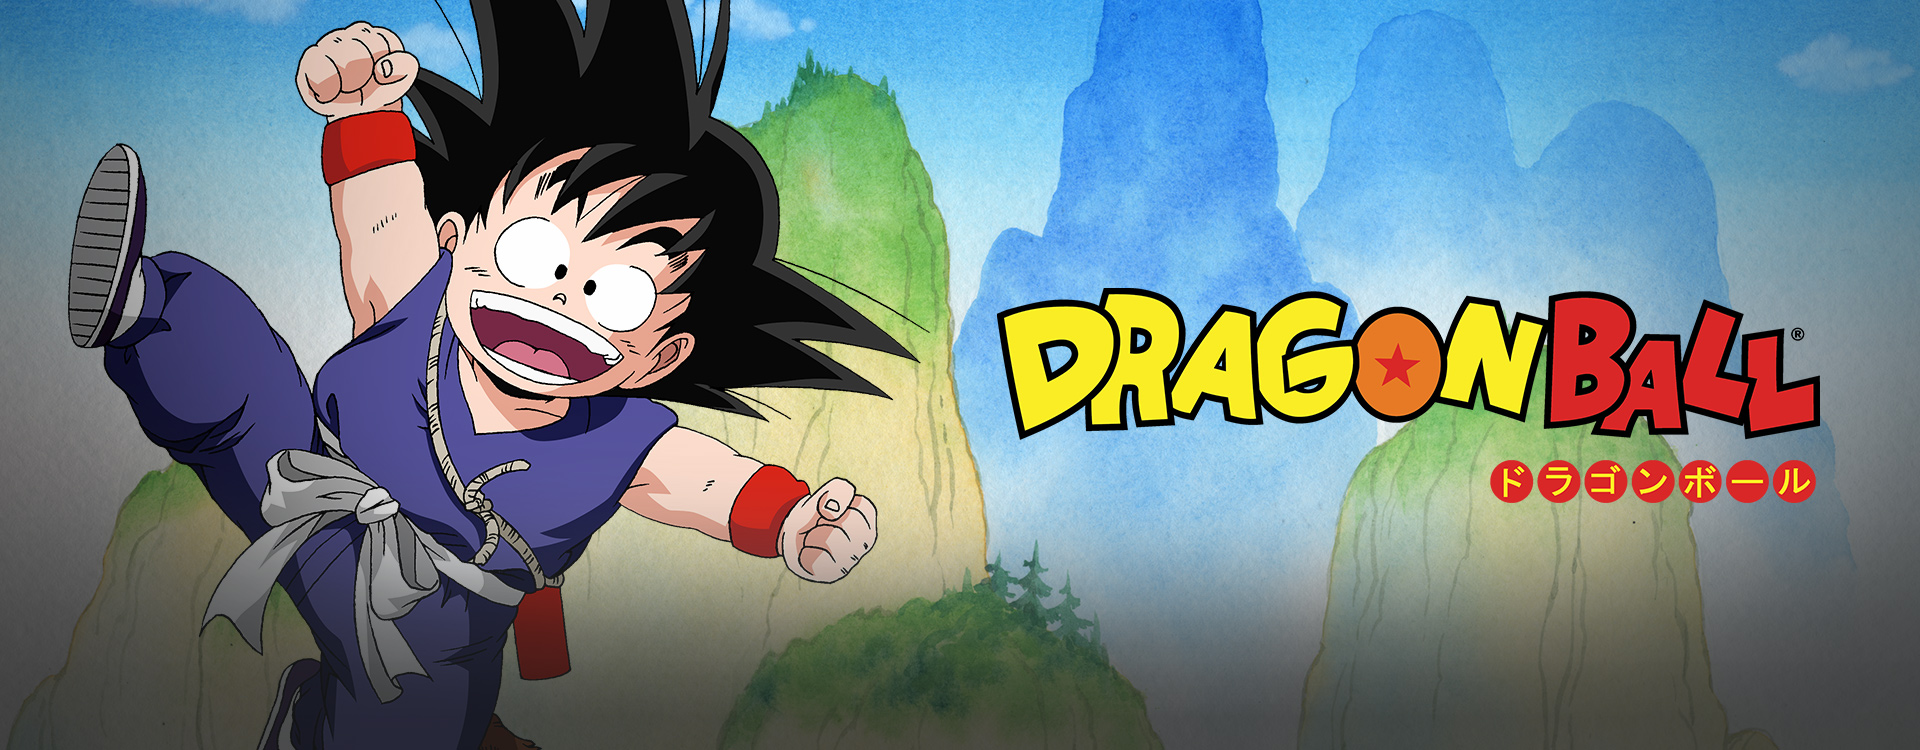 Watch Dragon Ball Episodes Sub & Dub | Action/Adventure